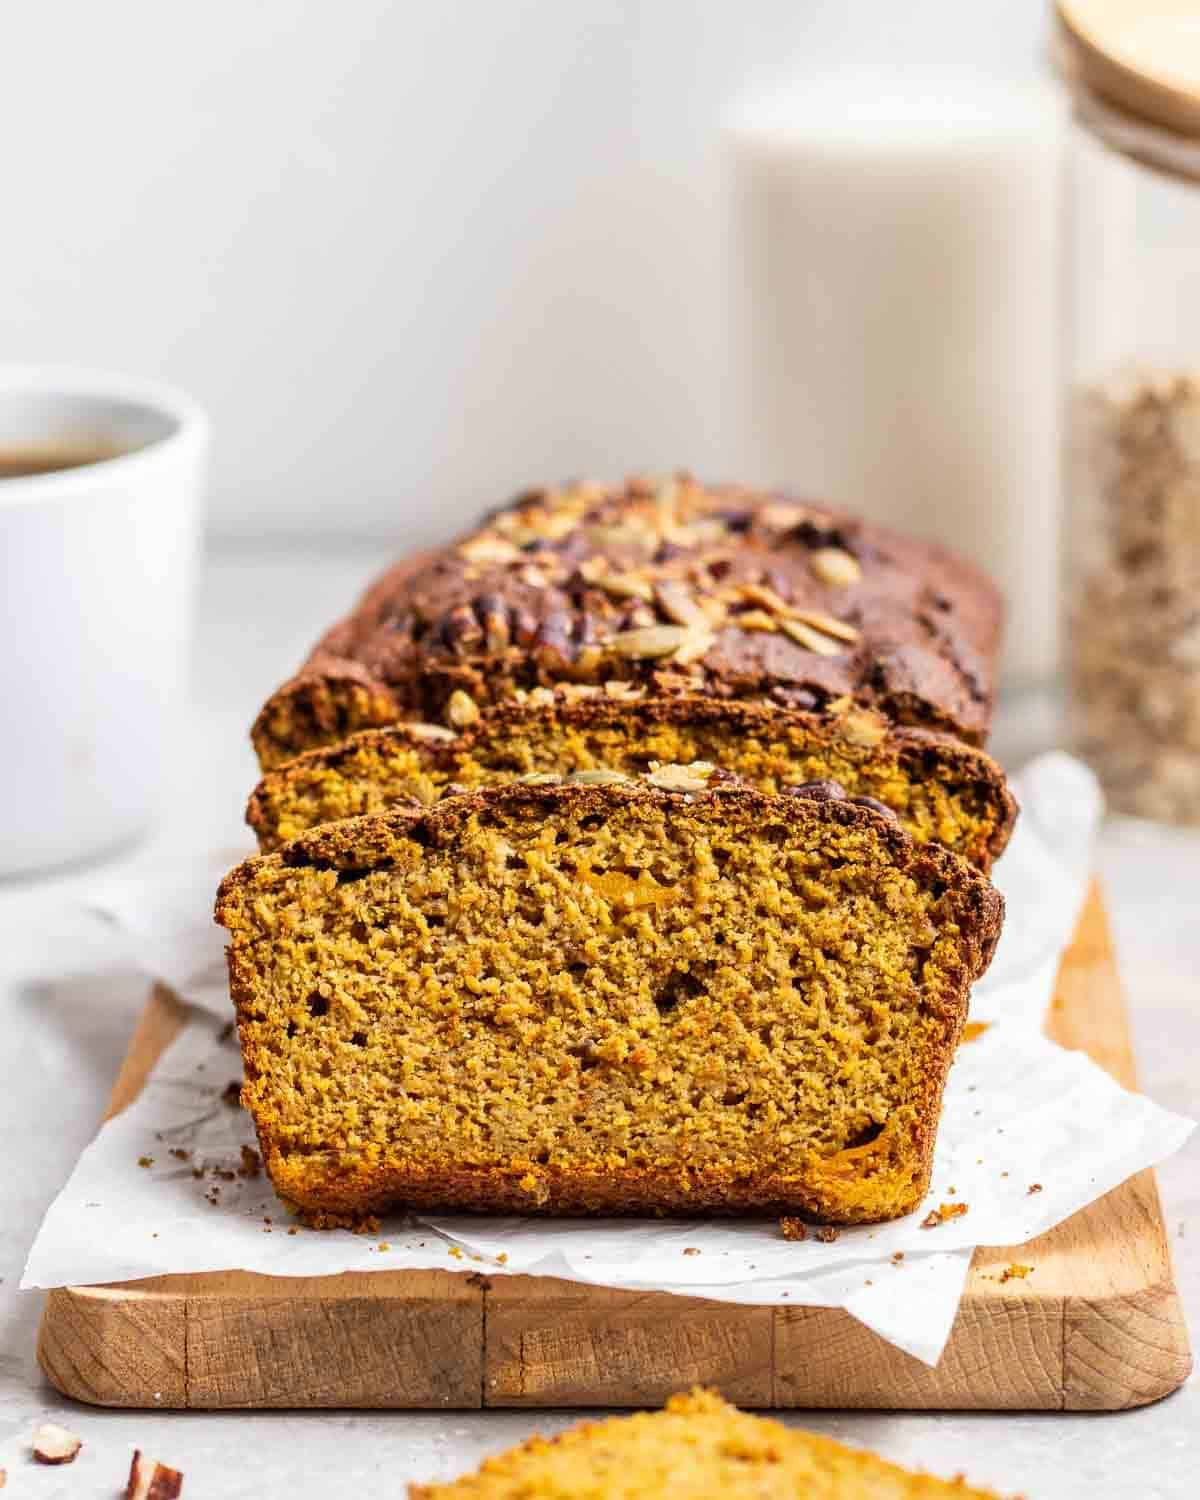 Partially sliced pumpkin banana bread on a wooden board lined with parchment paper.